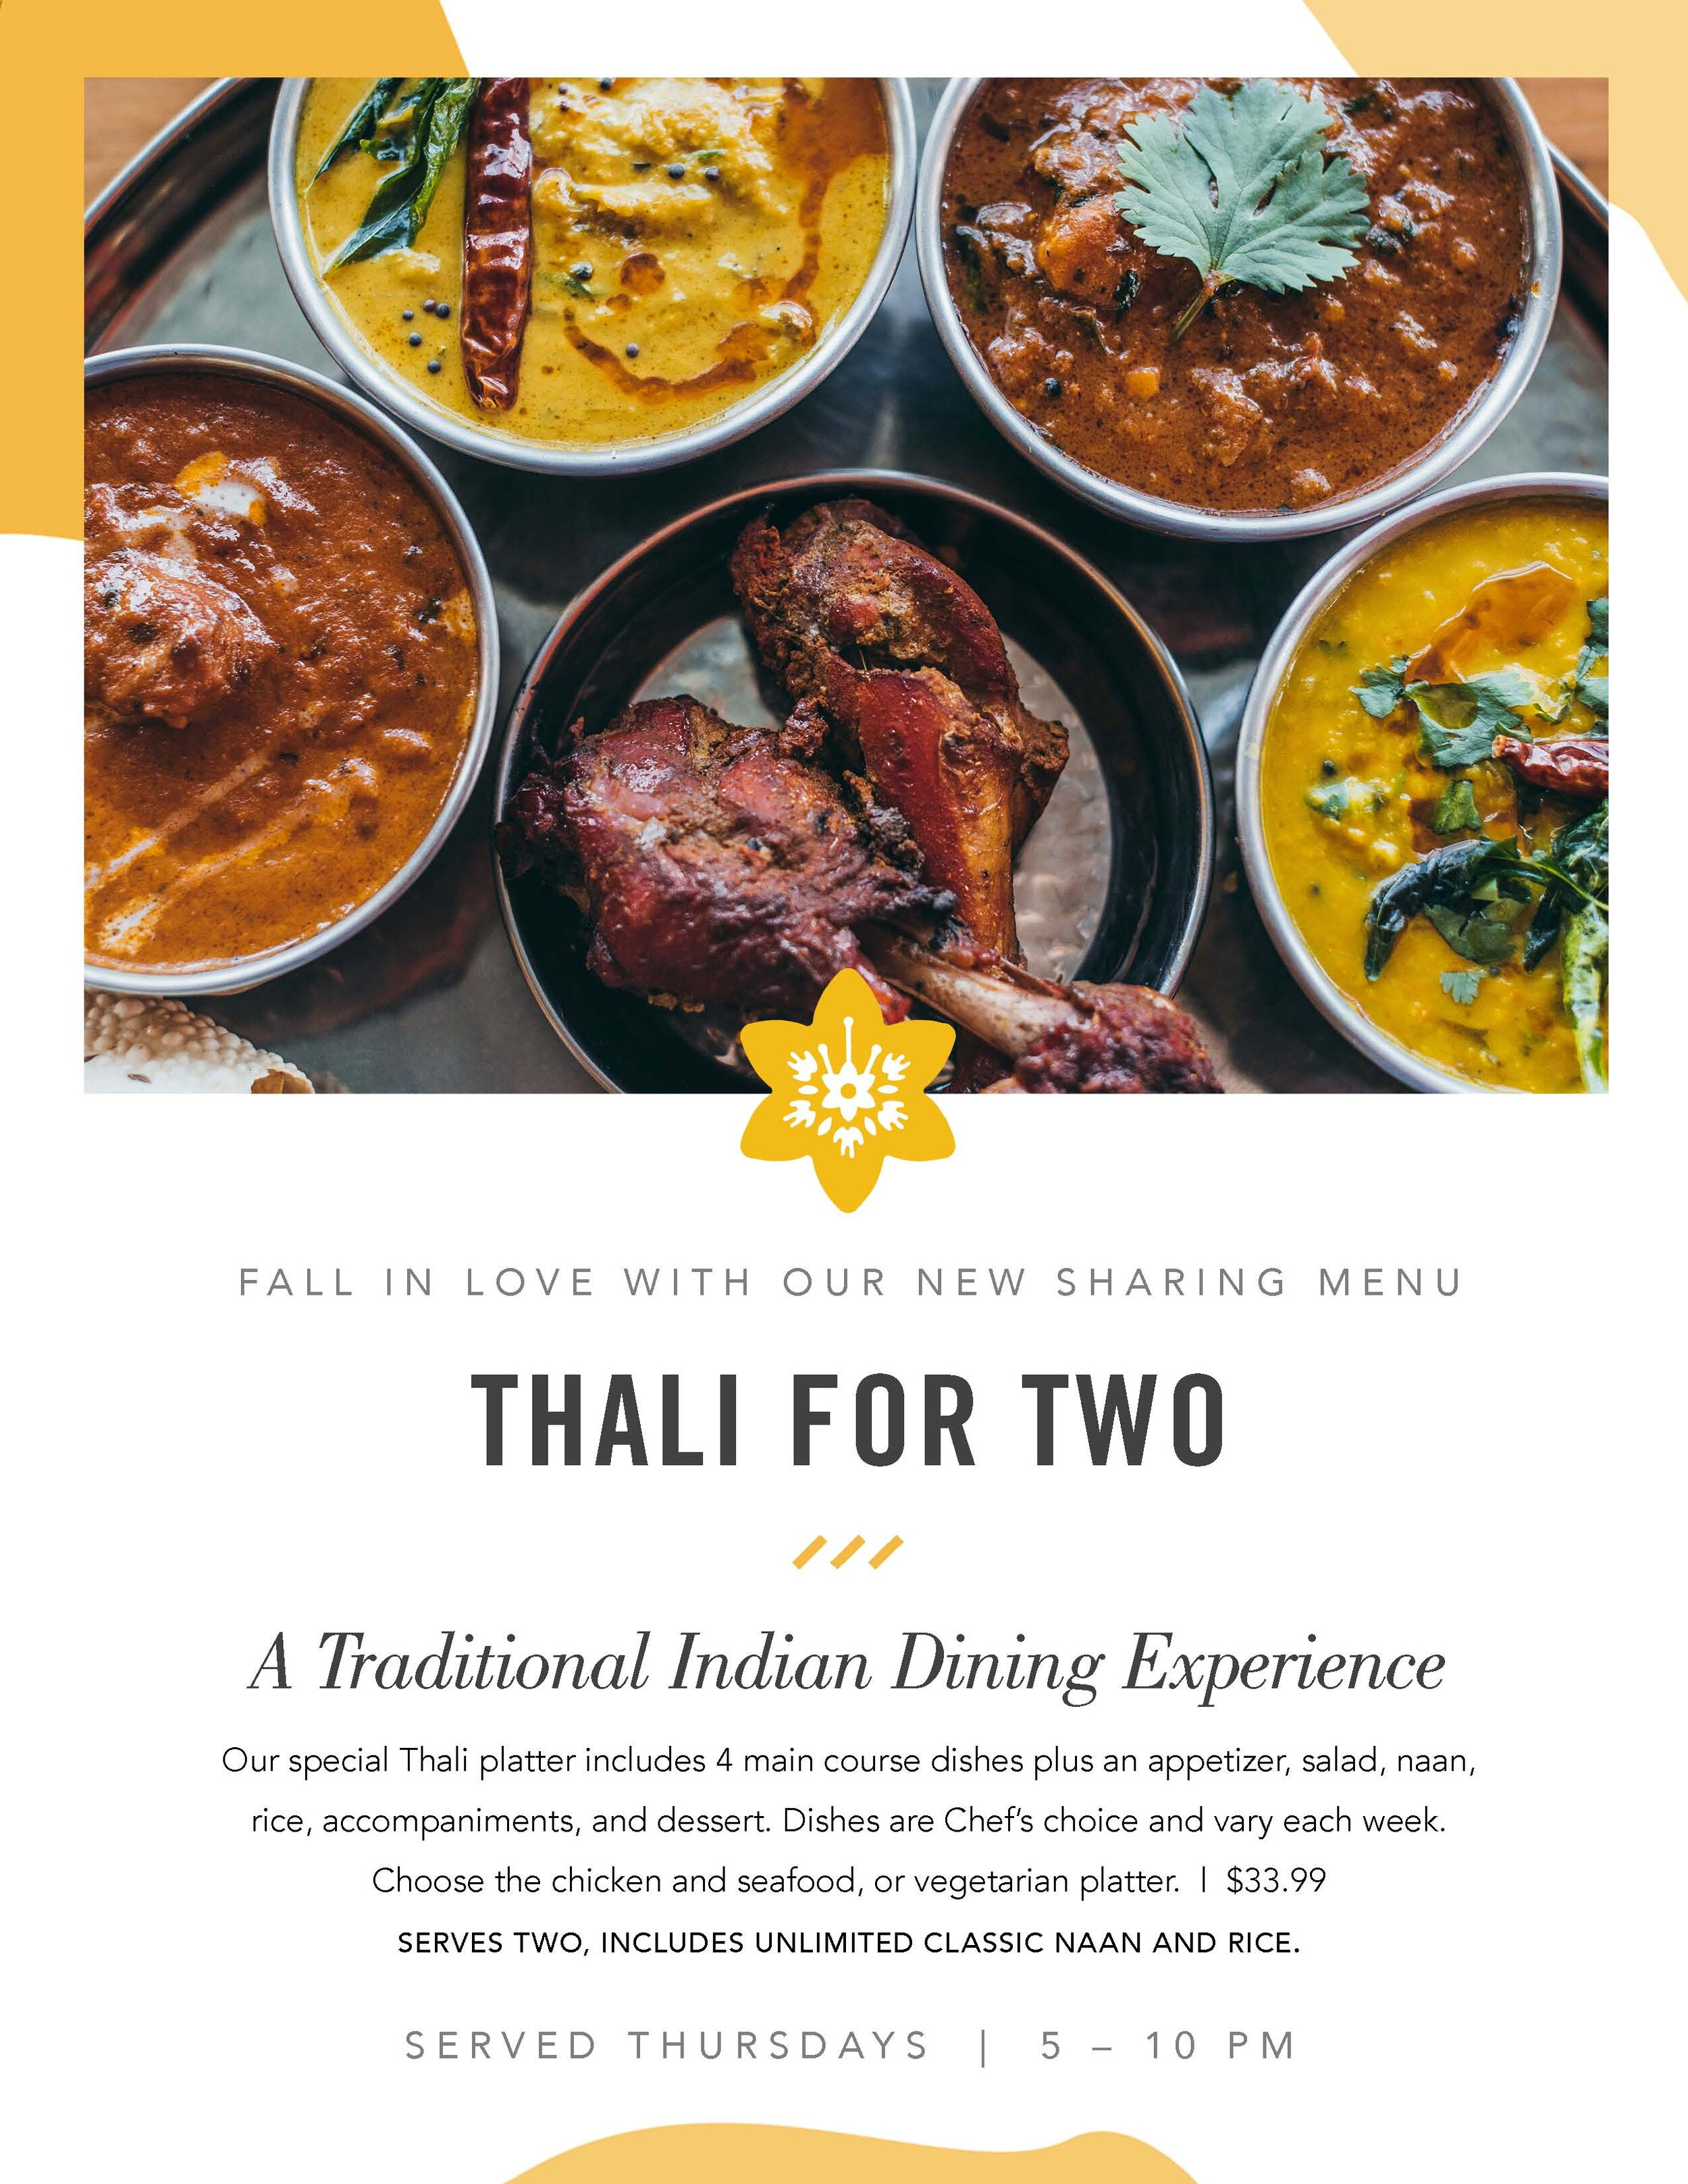 Thali For Two A Traditional Indian